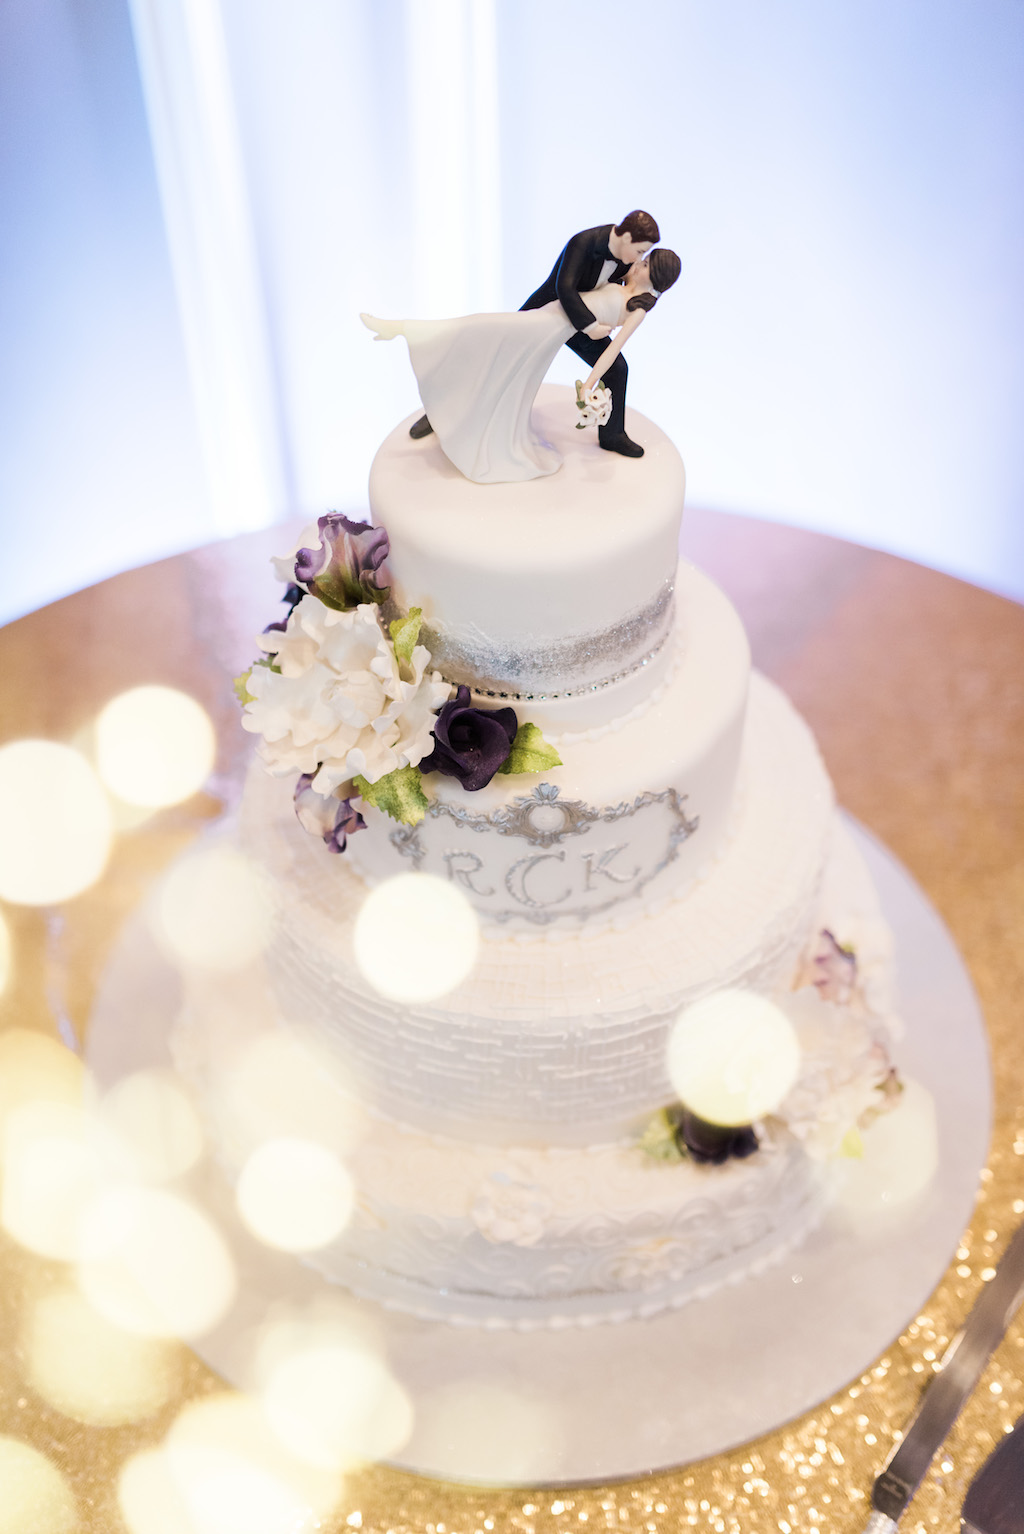 Four Tiered Round White Wedding Cake with Silver Decorative Icing, White and Purple Flowers, and Bride and Groom Figure Cake Topper